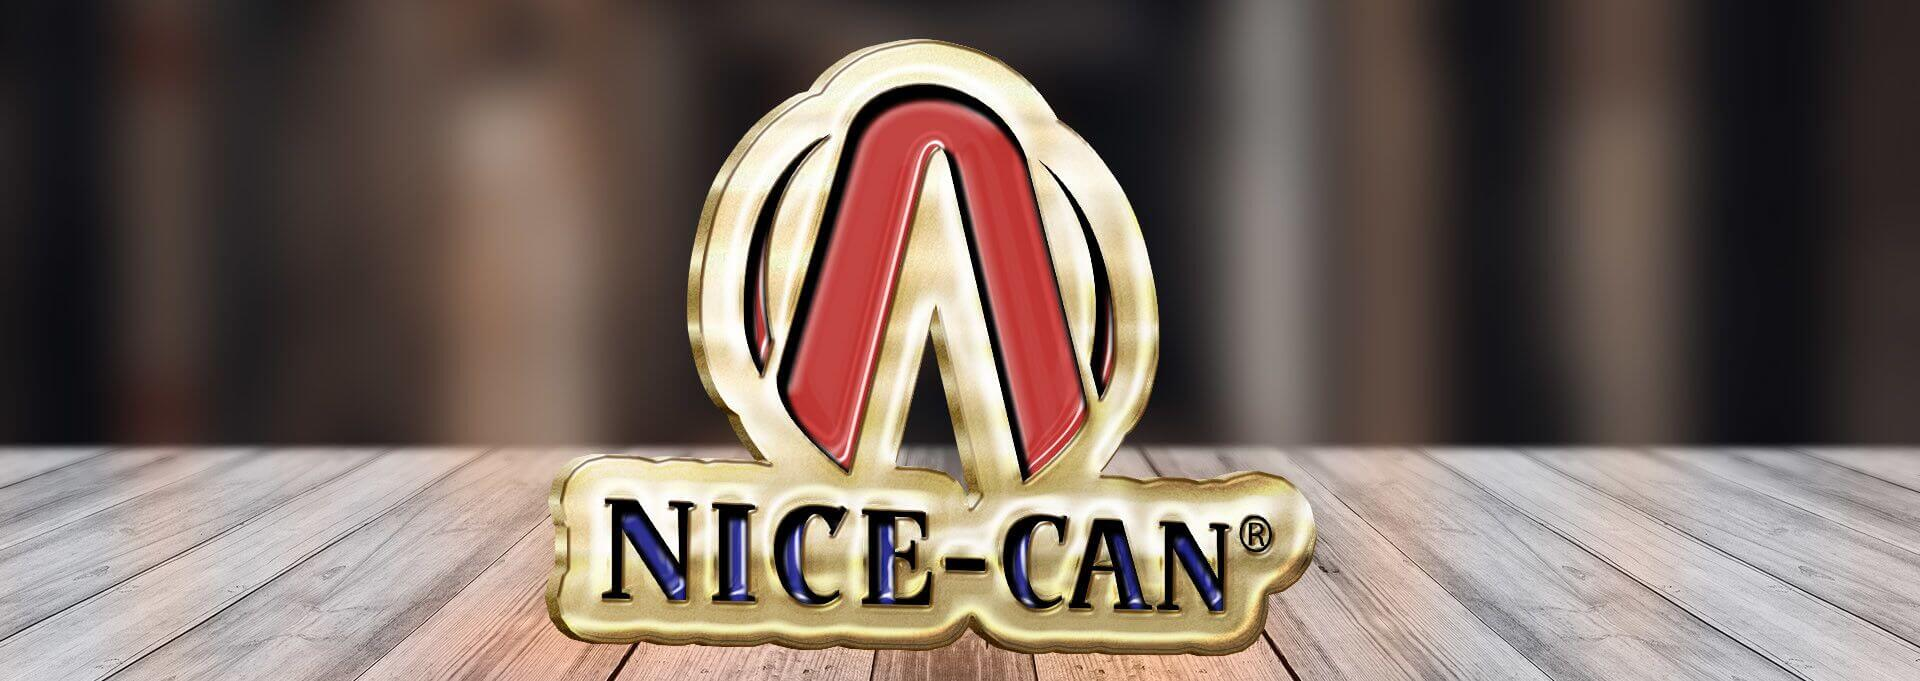 Nice-Can Manufacturing Co. Ltd